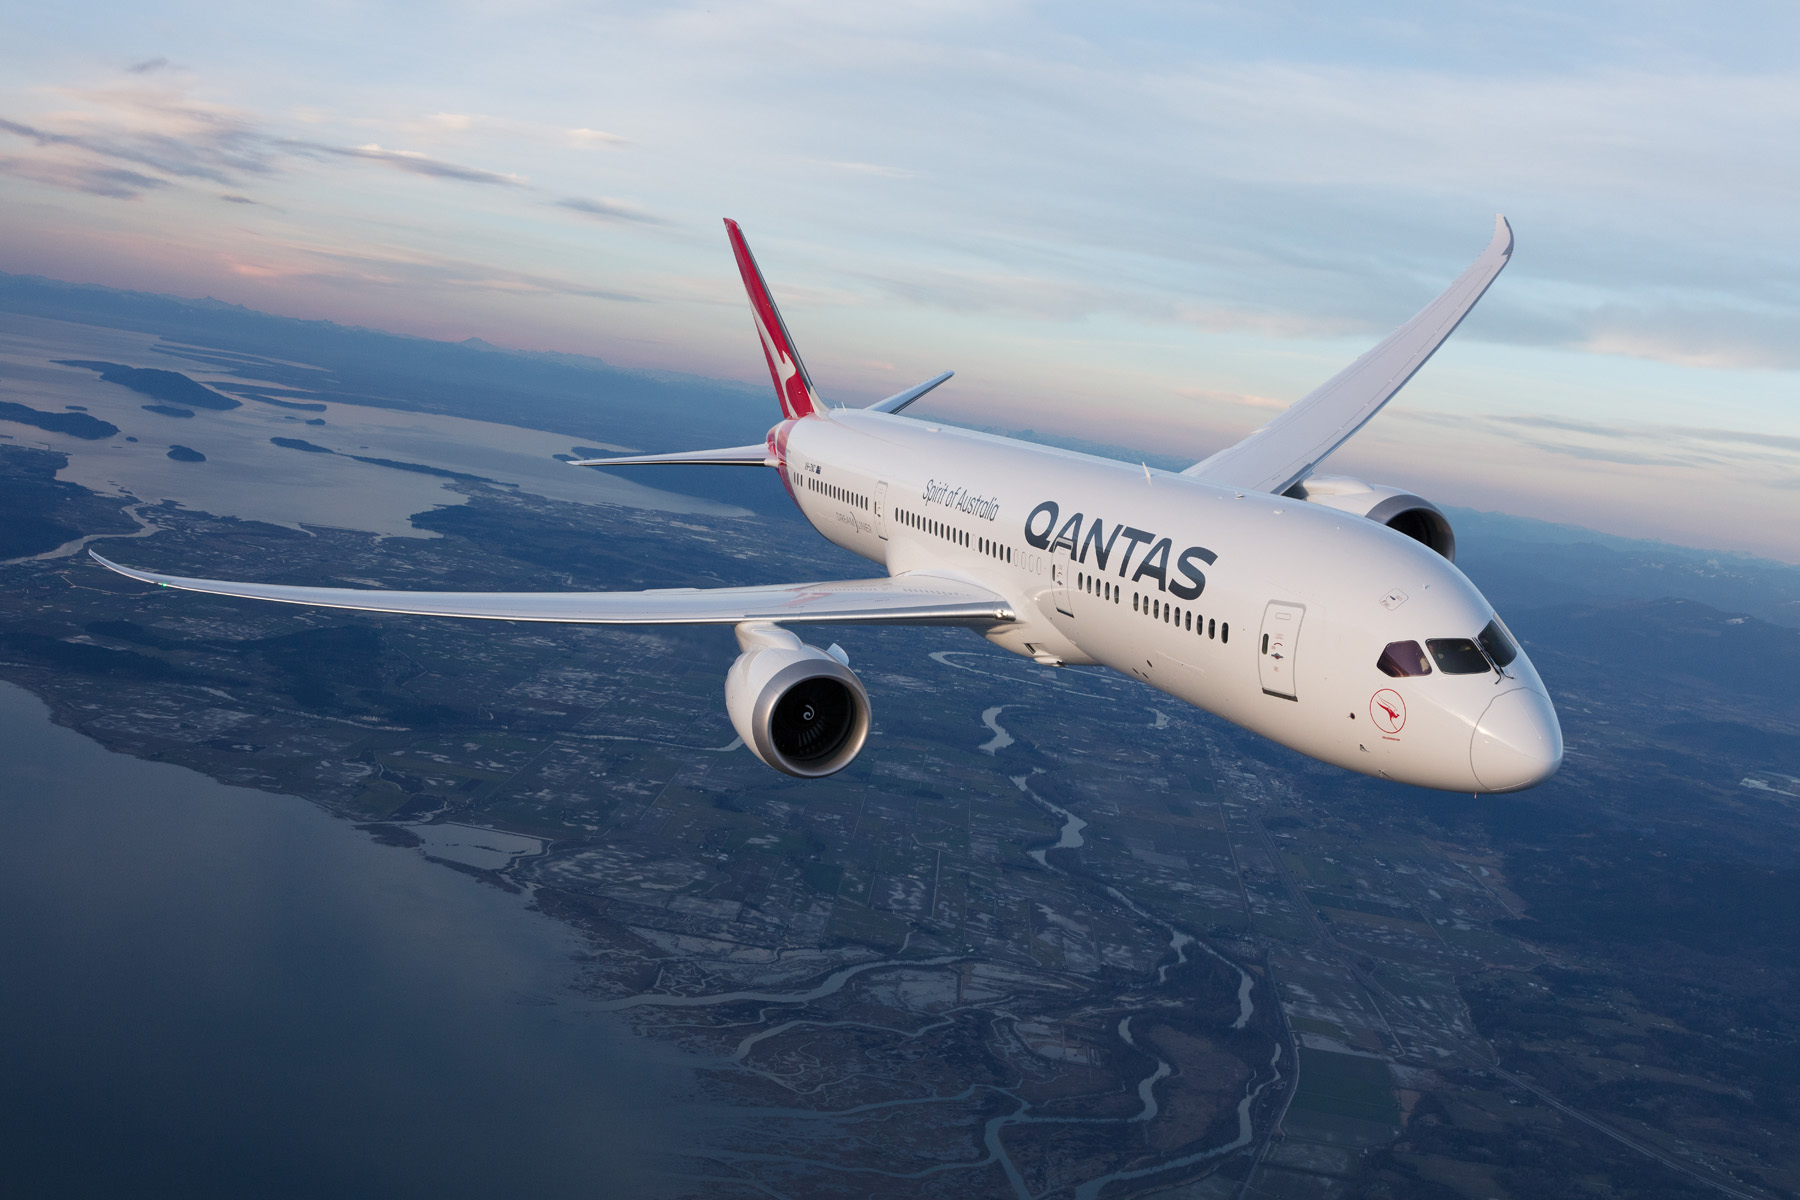 25% bonus when you transfer DBS Points to Qantas Frequent Flyer